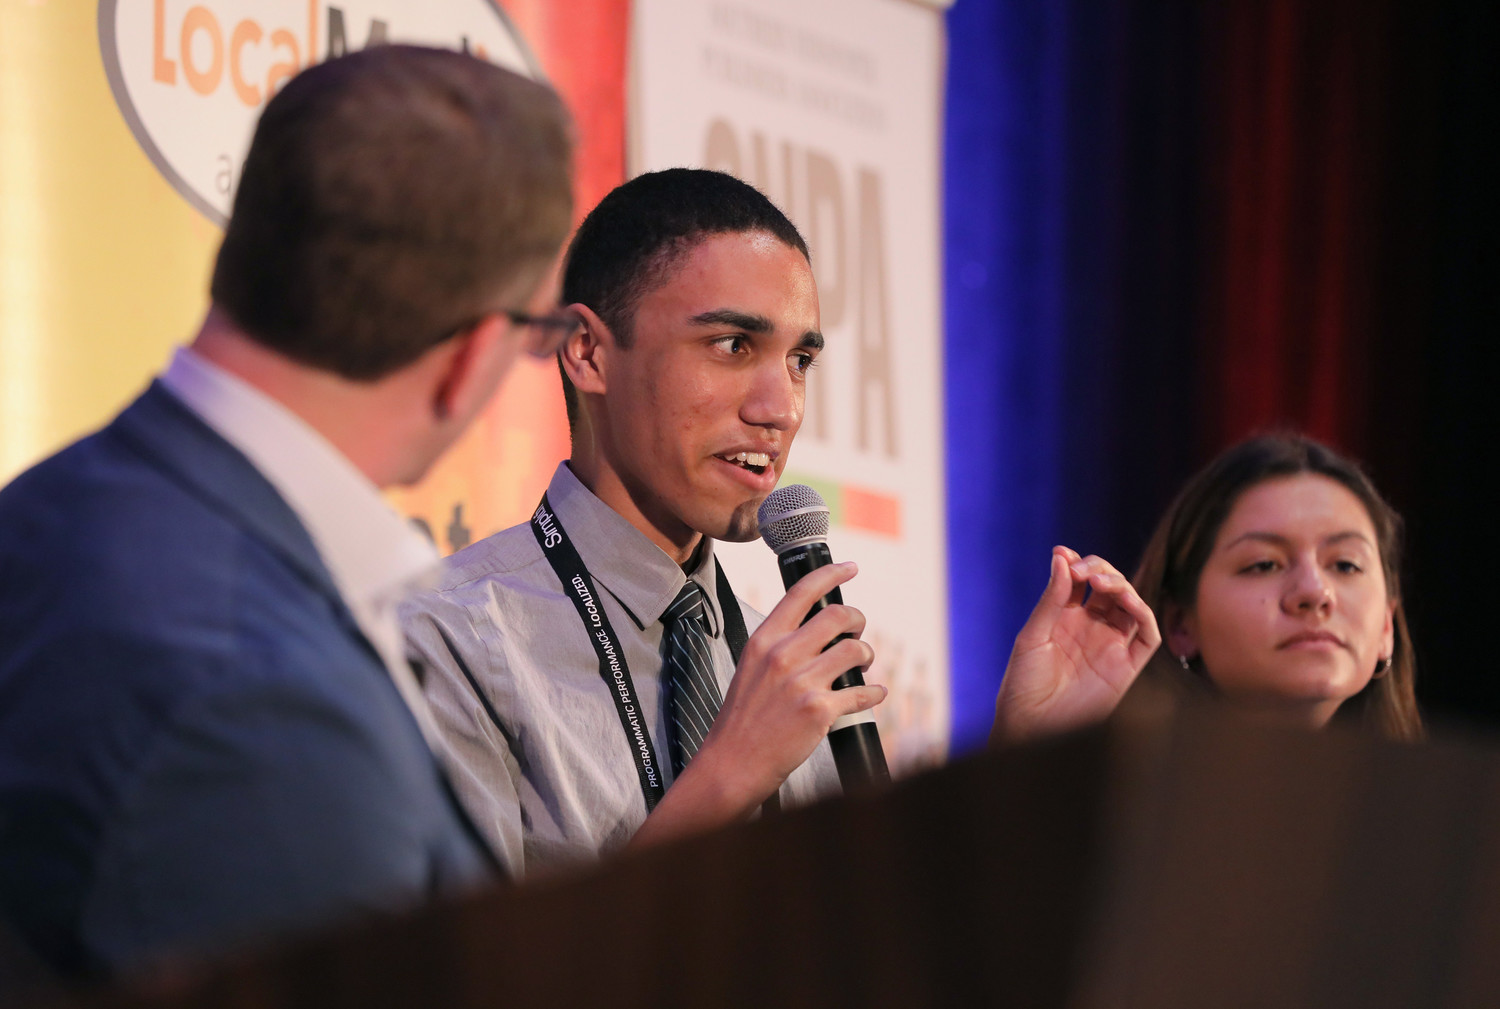 James Tyner, a student at USC Annenberg School of Journalism, shares his thoughts during the Future of Journalism panel